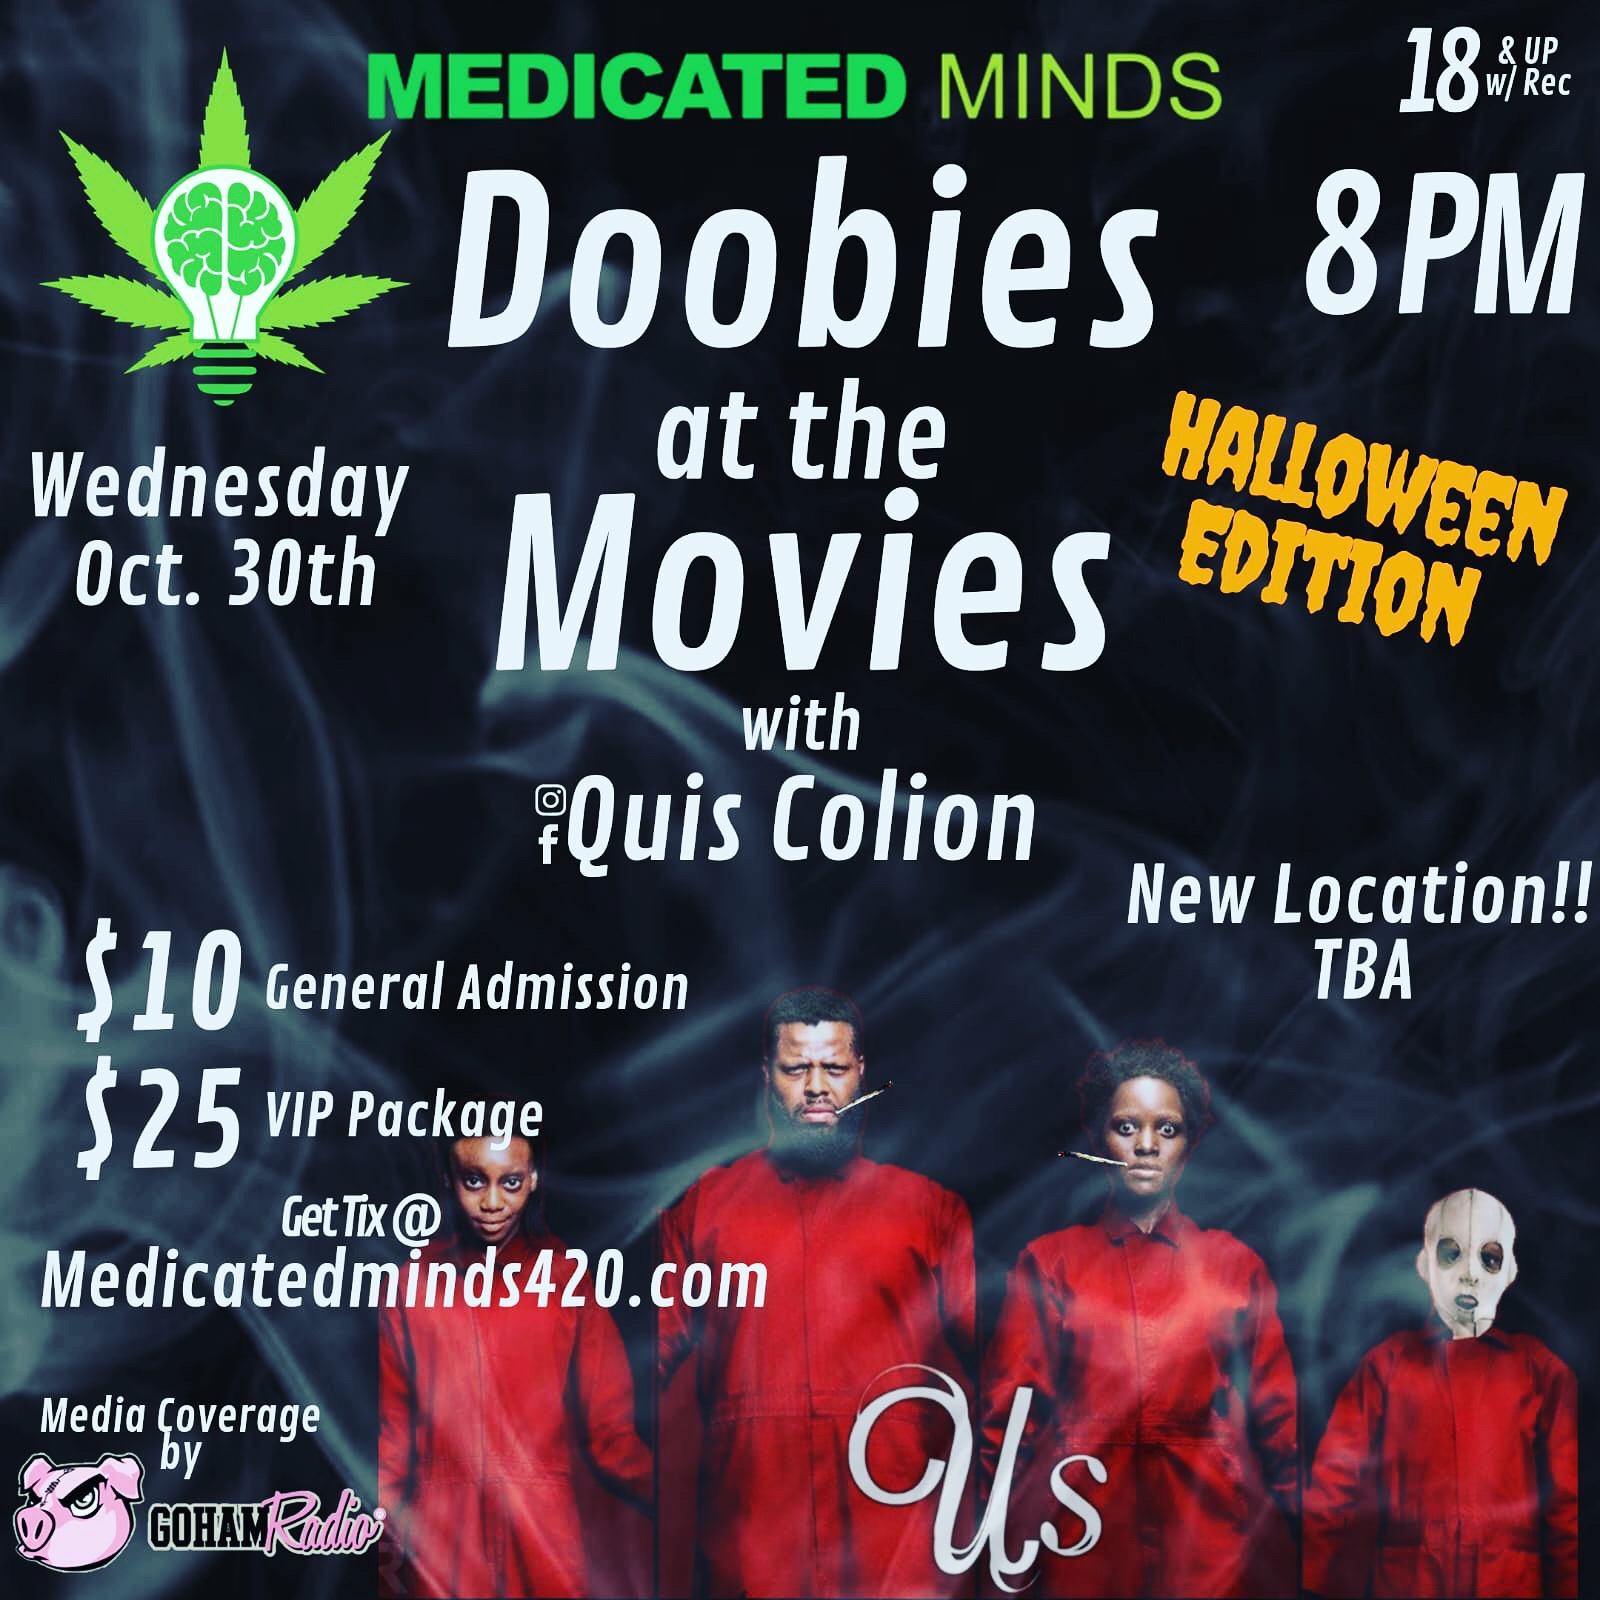 DOOBIES AT THE MOVIES HALLOWEEN EDITION